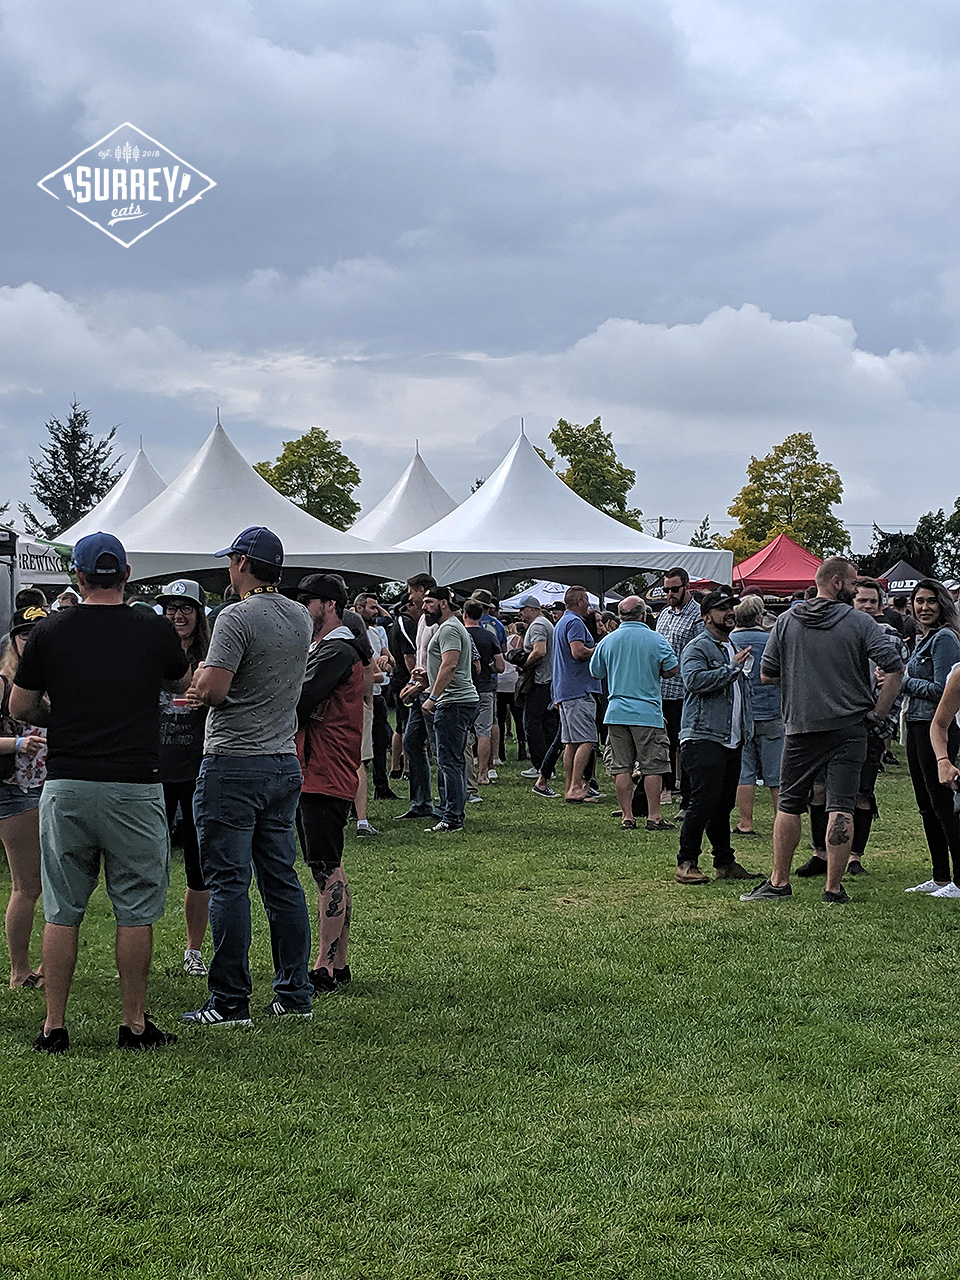 People Gathering On Grass at Clover Valley Beer Festival